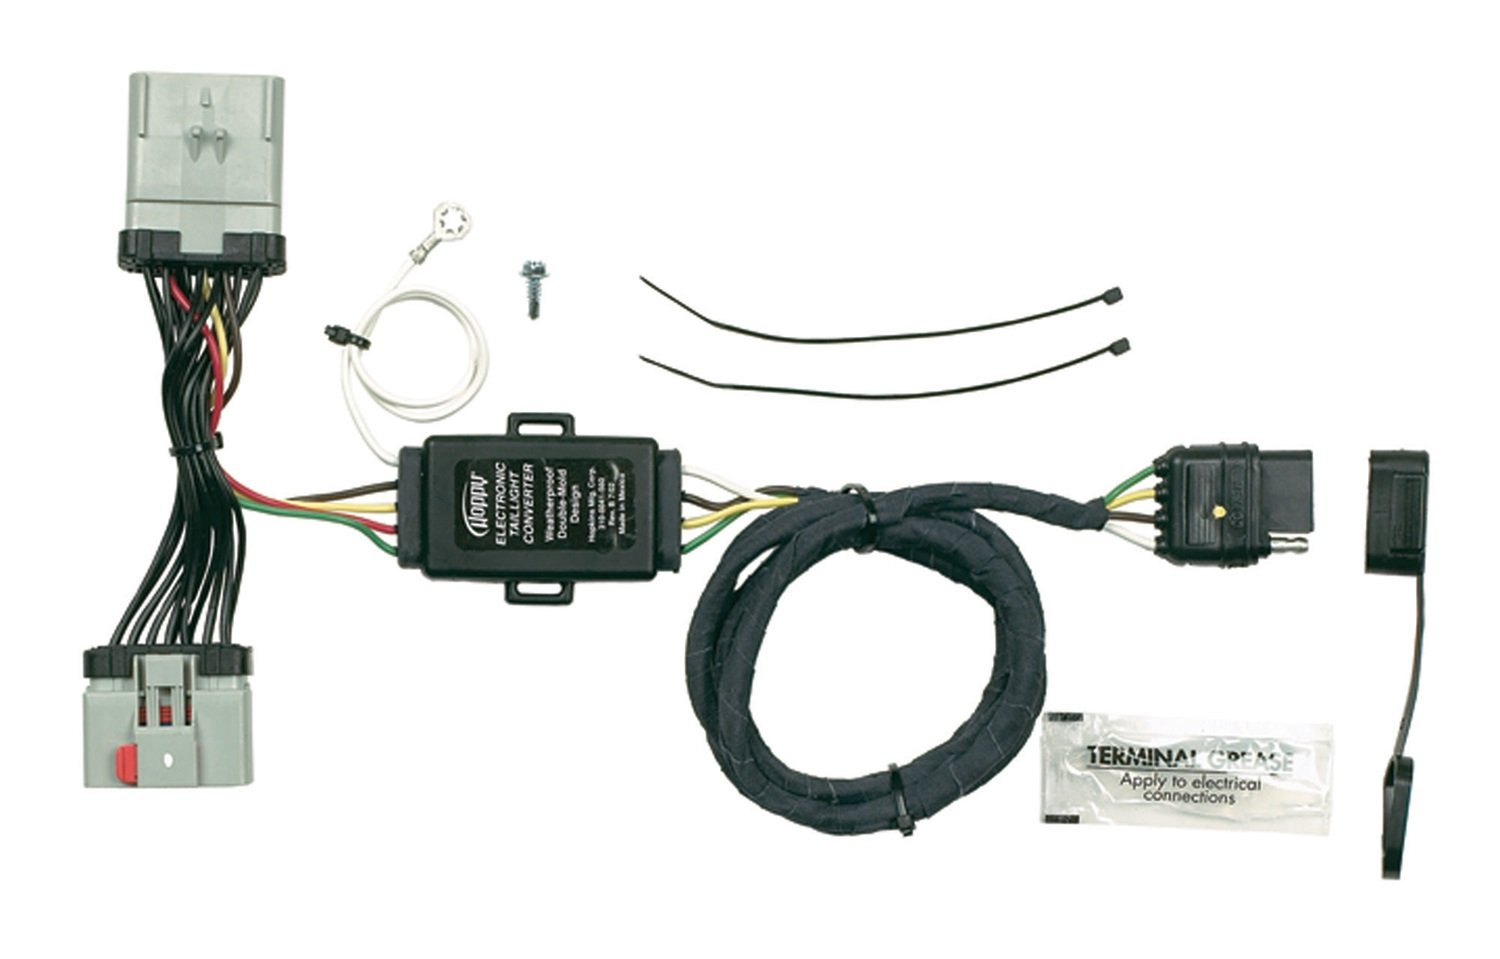 61a1DM22CCL._SL1500_ amazon com hopkins 42475 plug in simple vehicle wiring kit 2006 jeep liberty trailer wiring harness at couponss.co